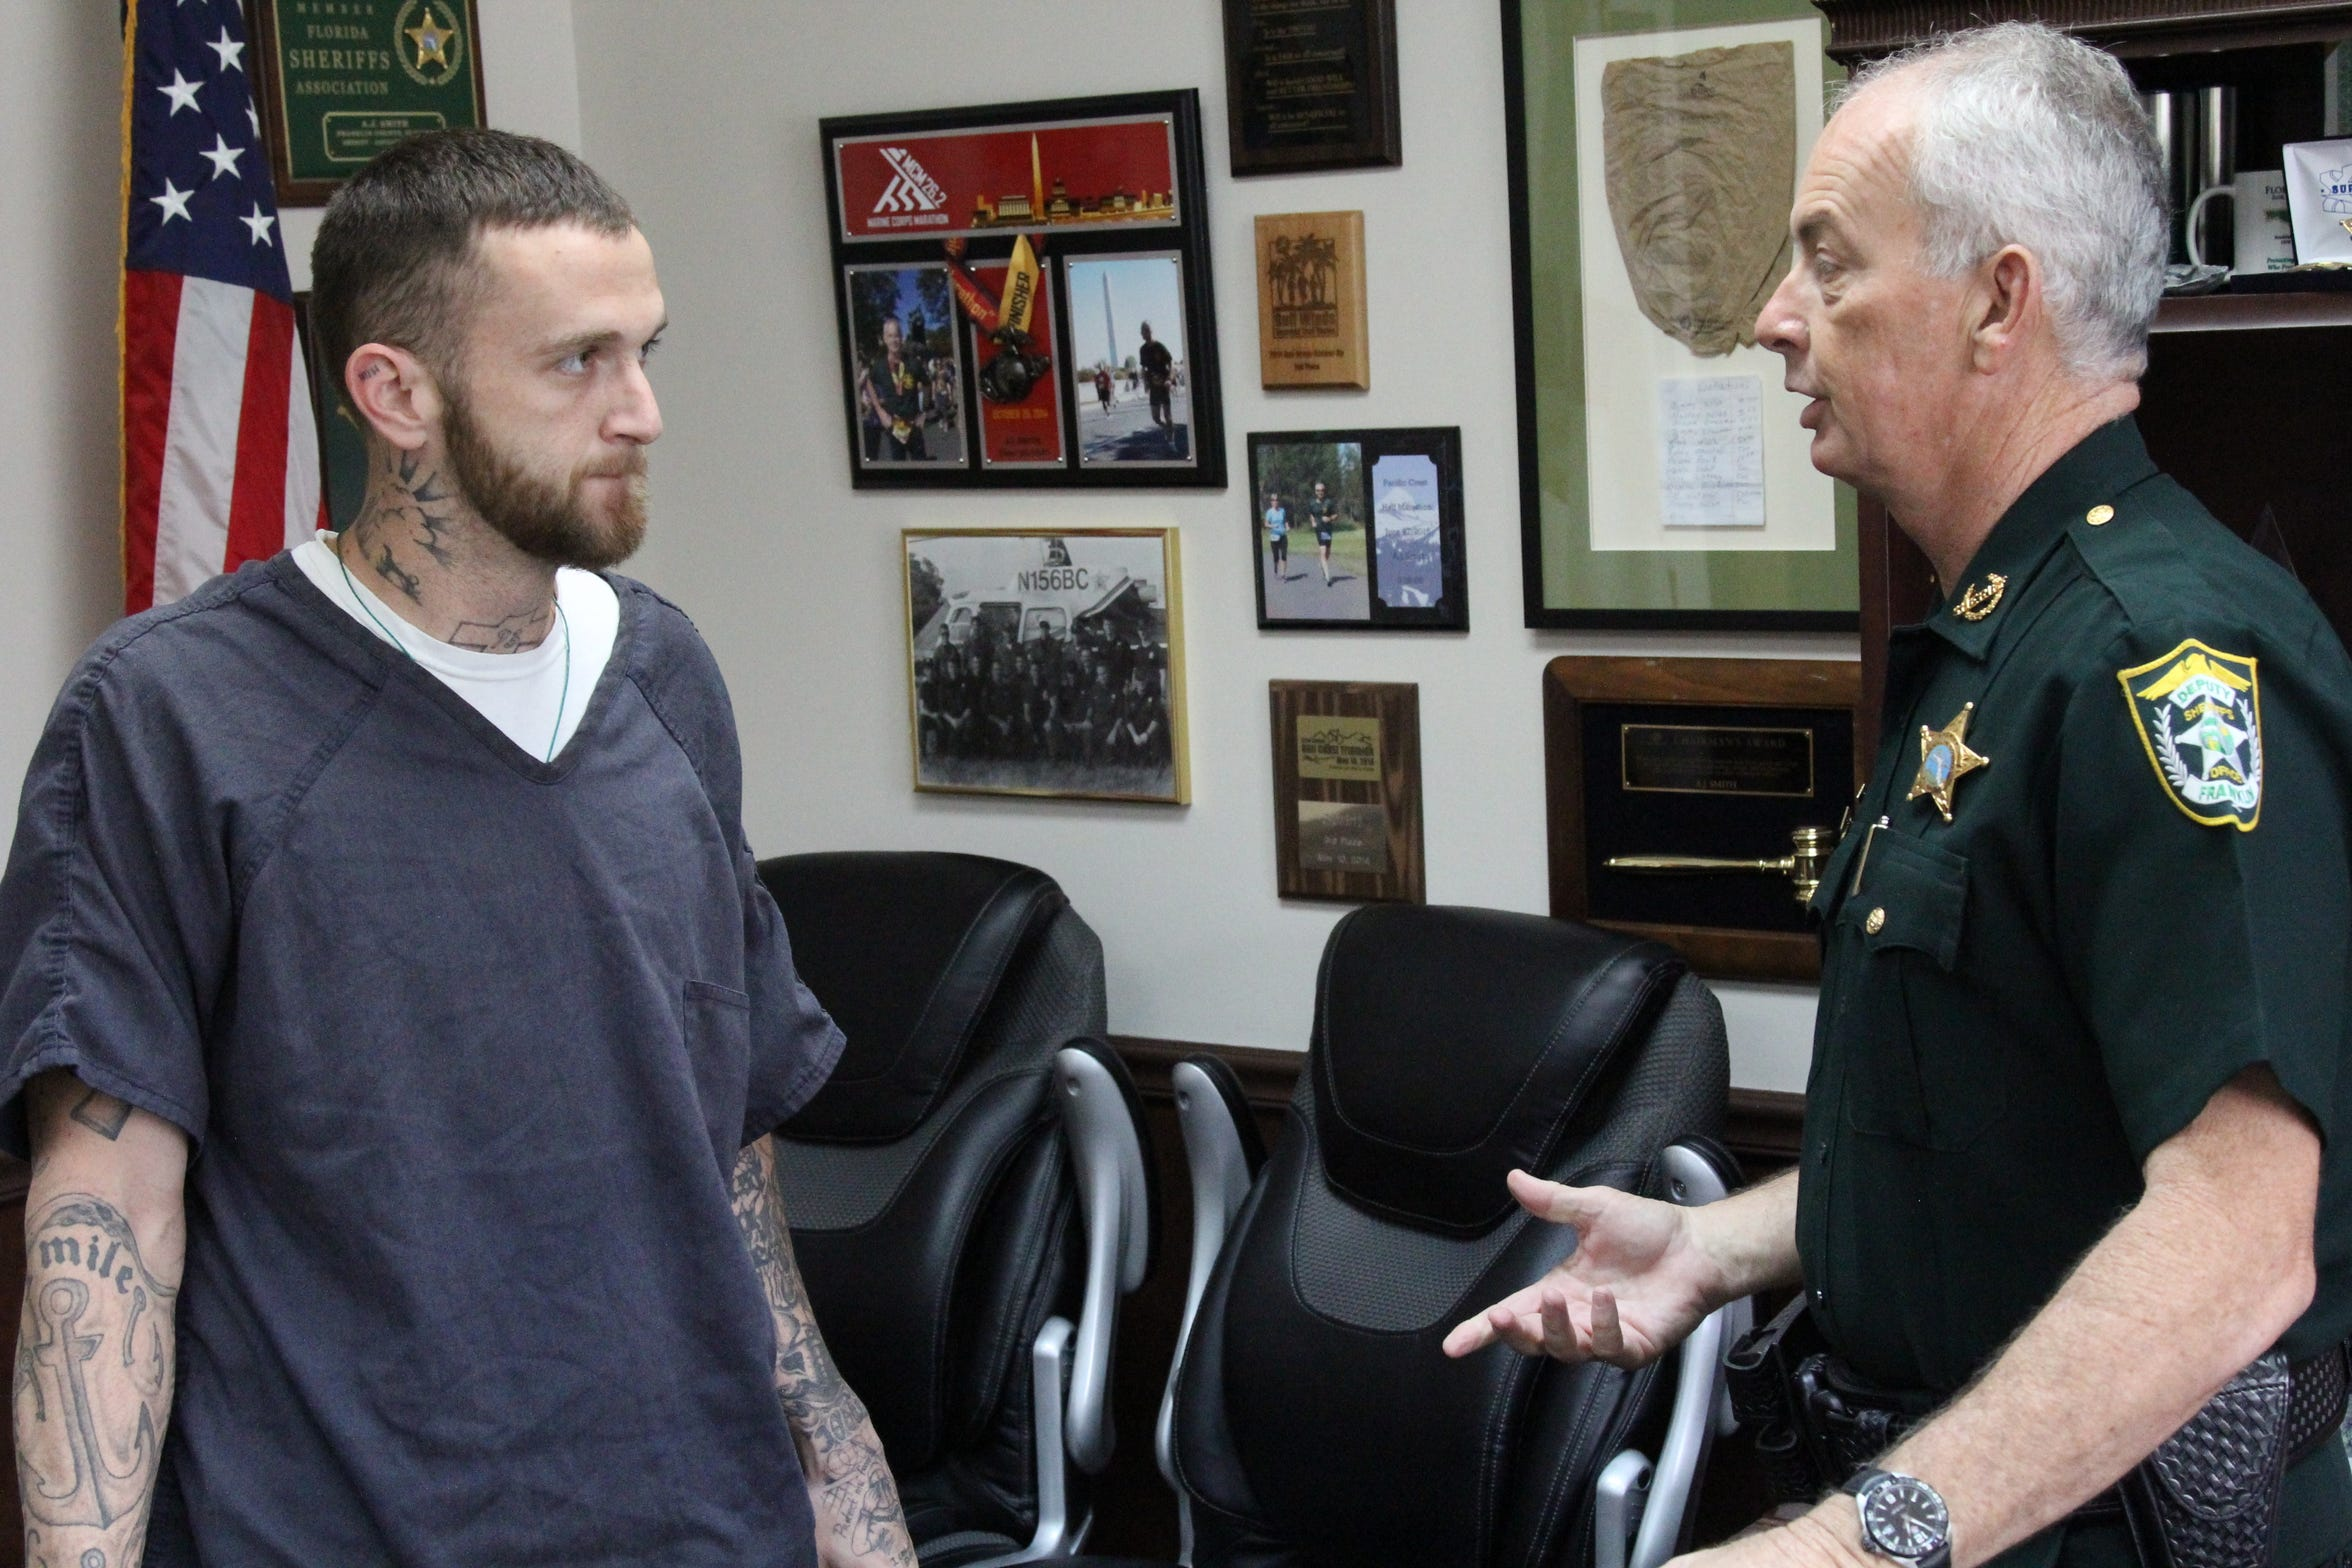 Austin Smith, 24, talks with Sheriff A.J. Smith in the Franklin County Jail.